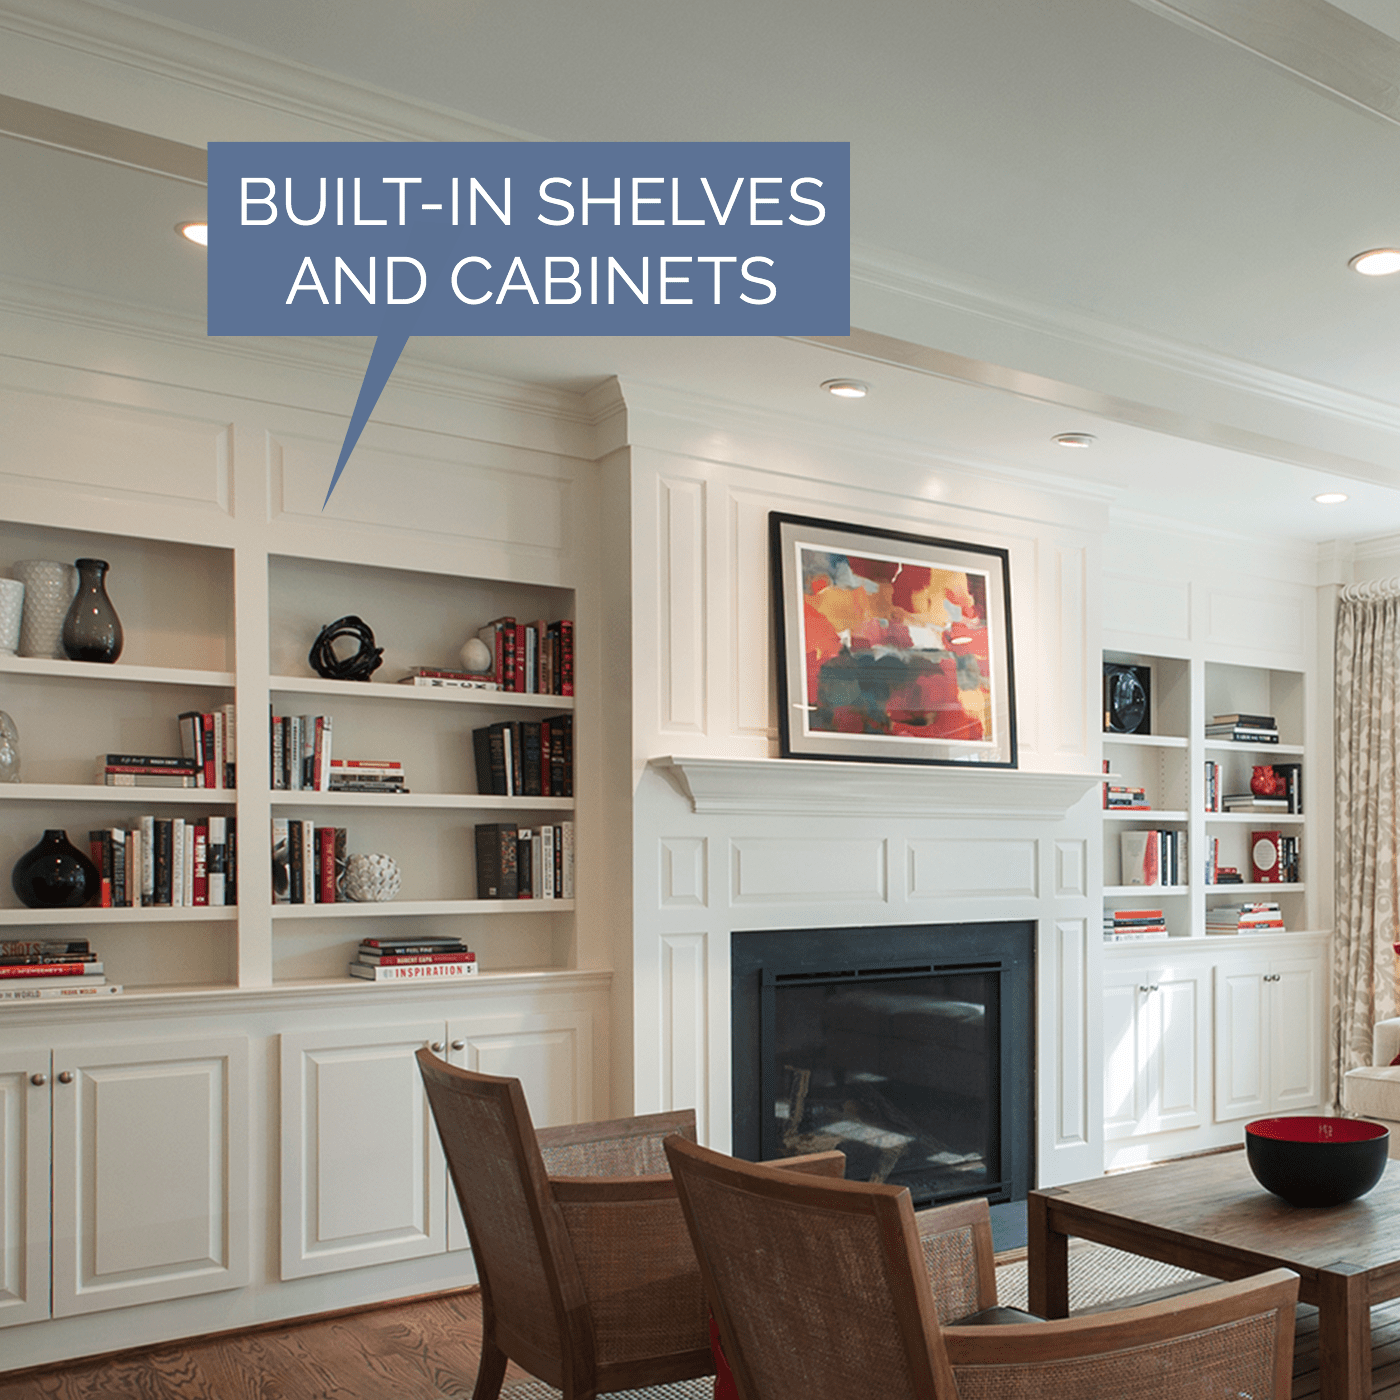 Image of built in shelves and cabinets